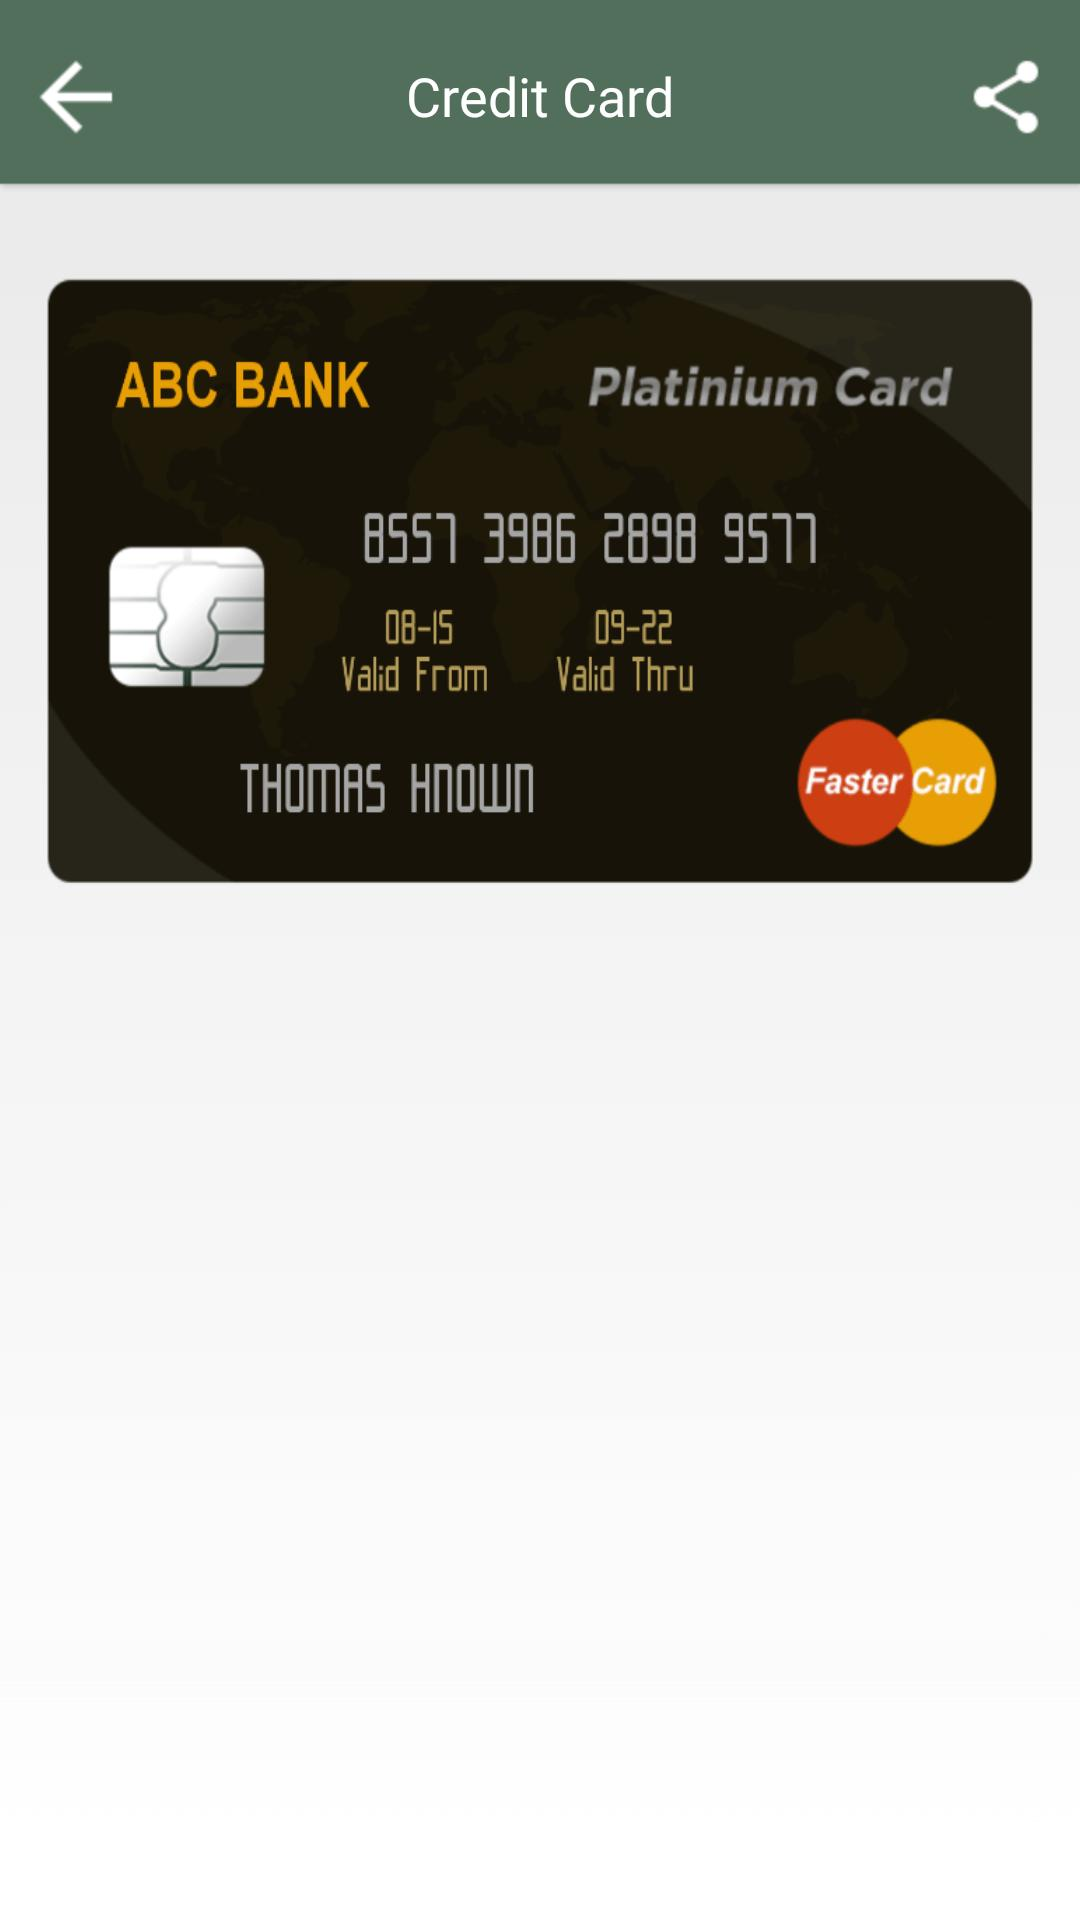 Fake Credit Card Maker for Android - APK Download